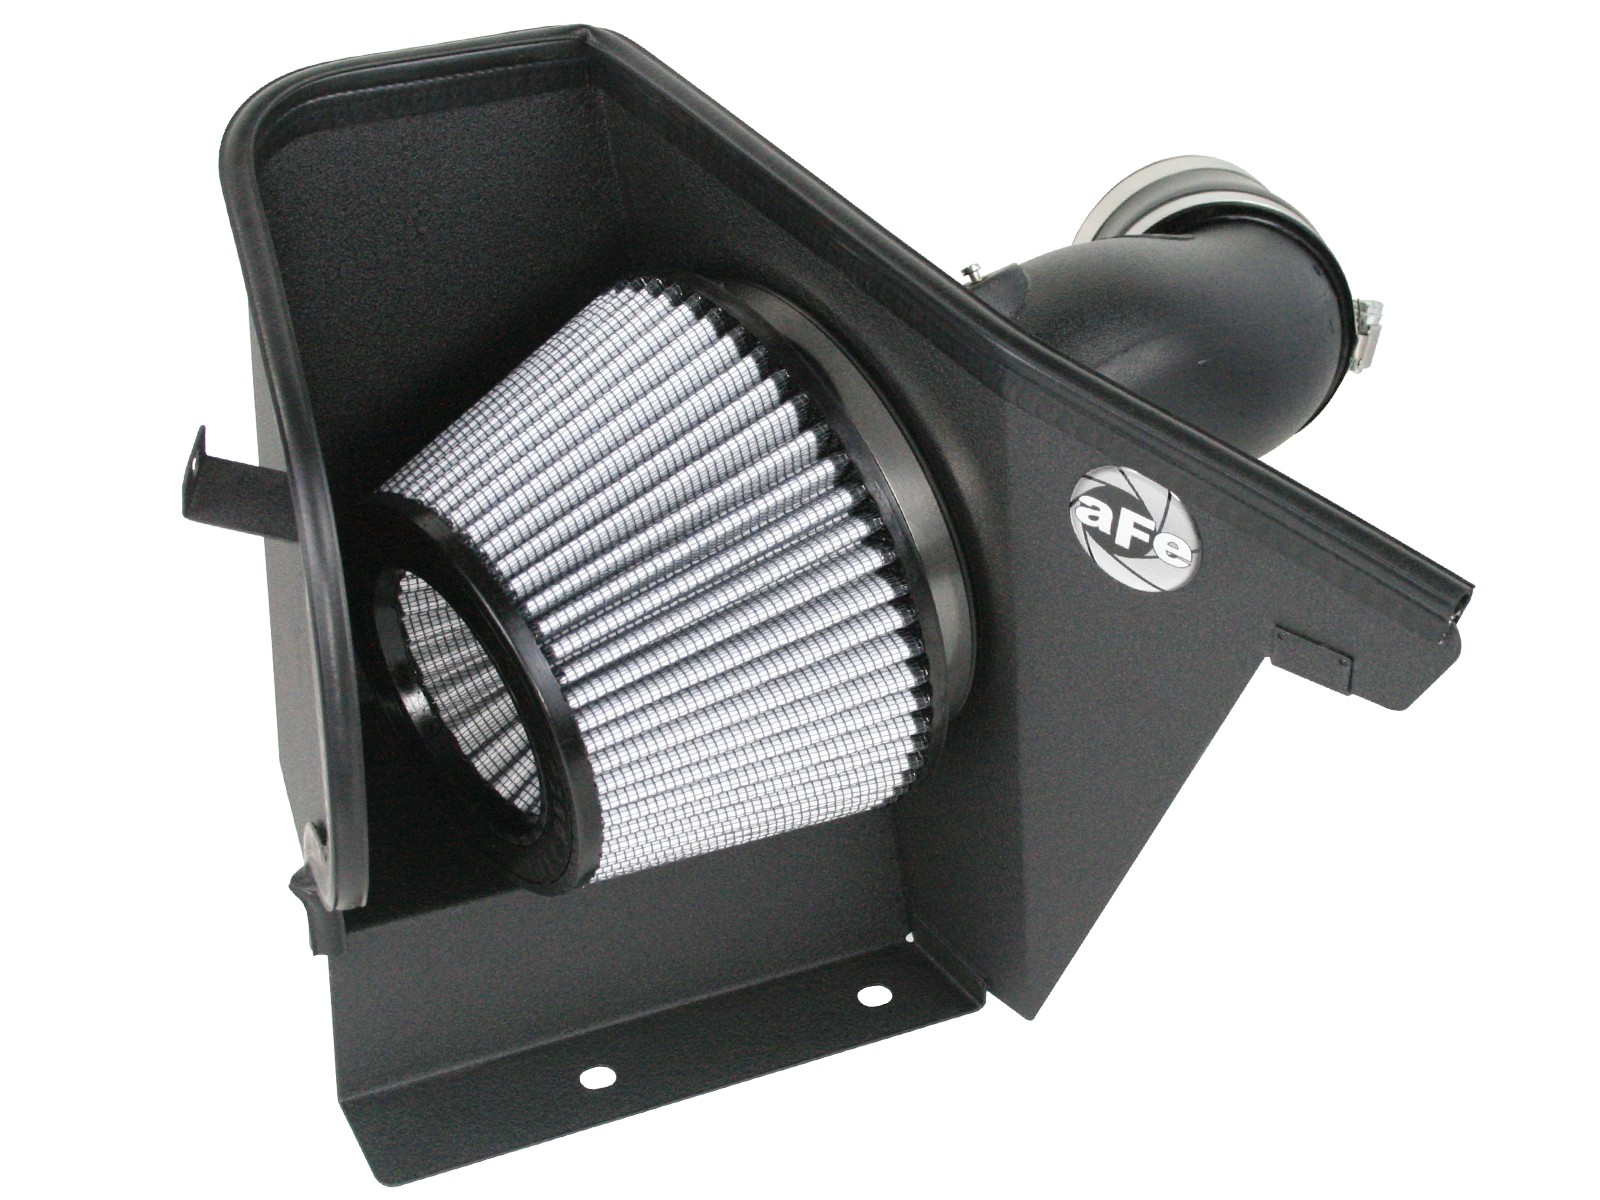 aFe POWER 51-11042 Magnum FORCE Stage-2 Pro DRY S Cold Air Intake System